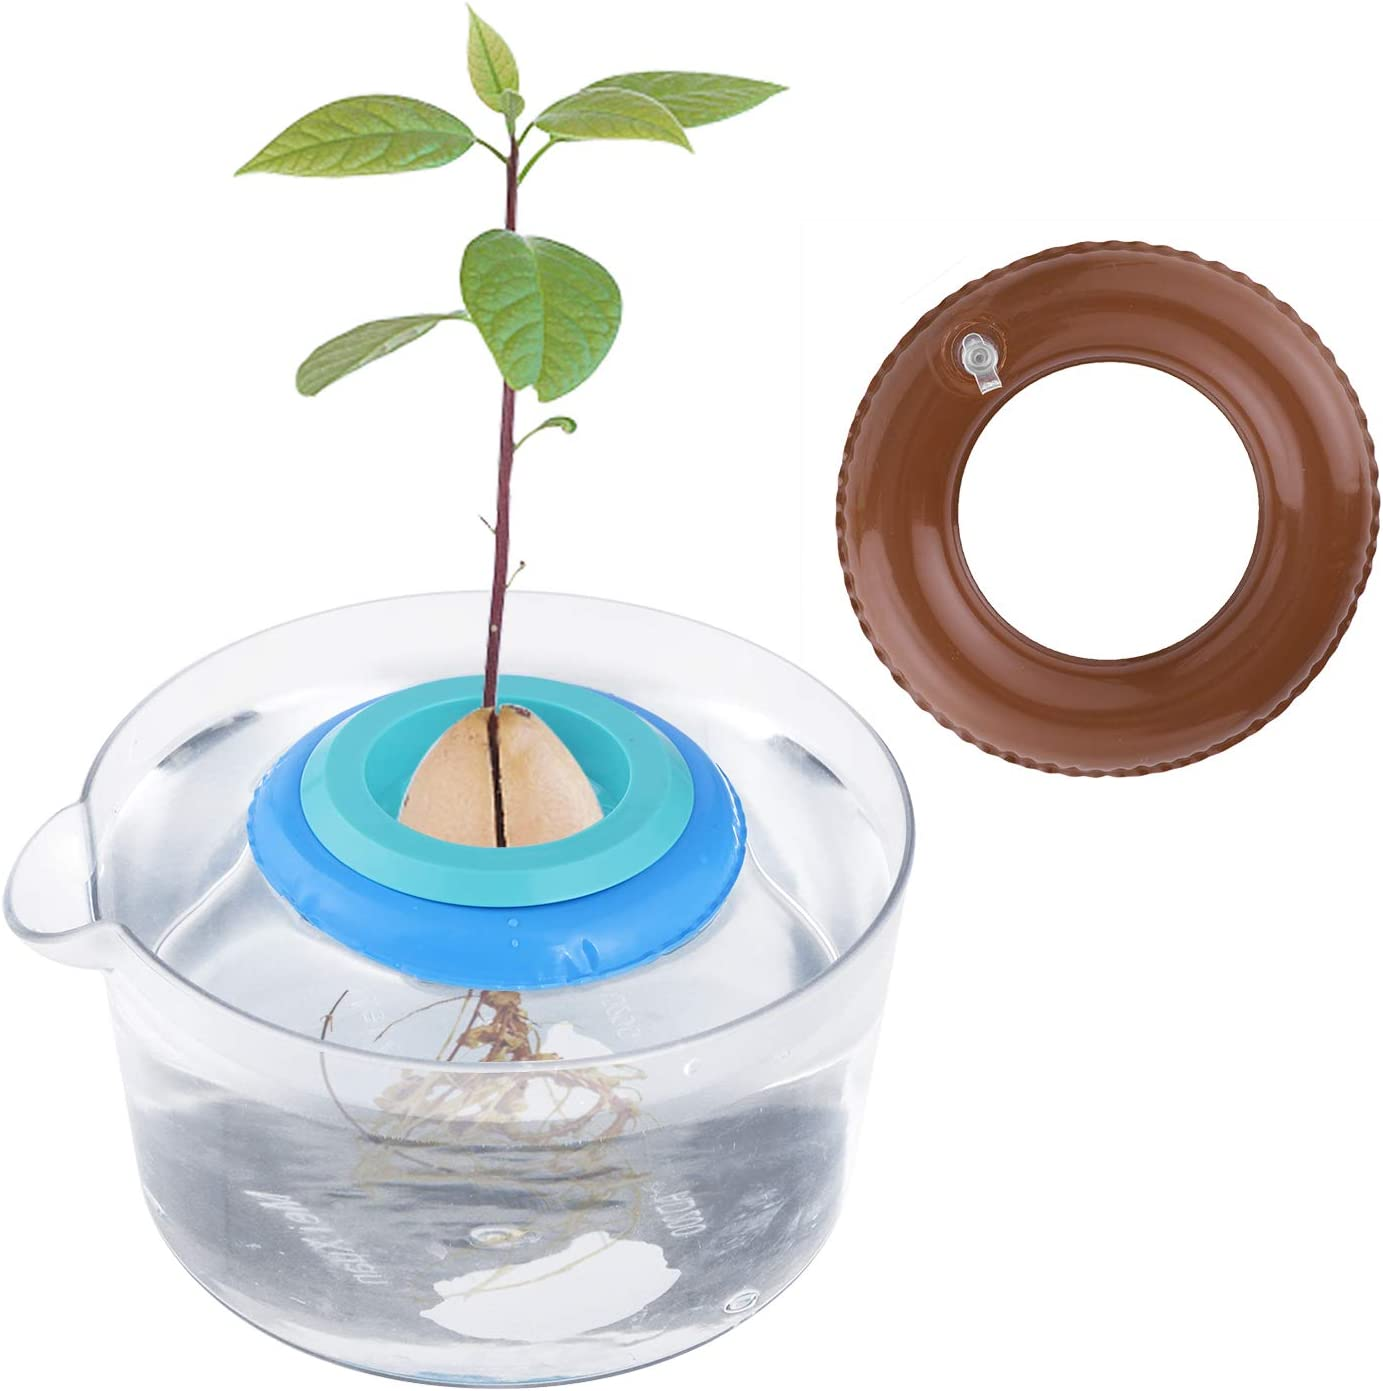 Avocado Tree Growing Kit with Clear Pot-Avocado Planting Bowl for Plant Your Own Avocado Trees Garden Gift for Avocado Lover